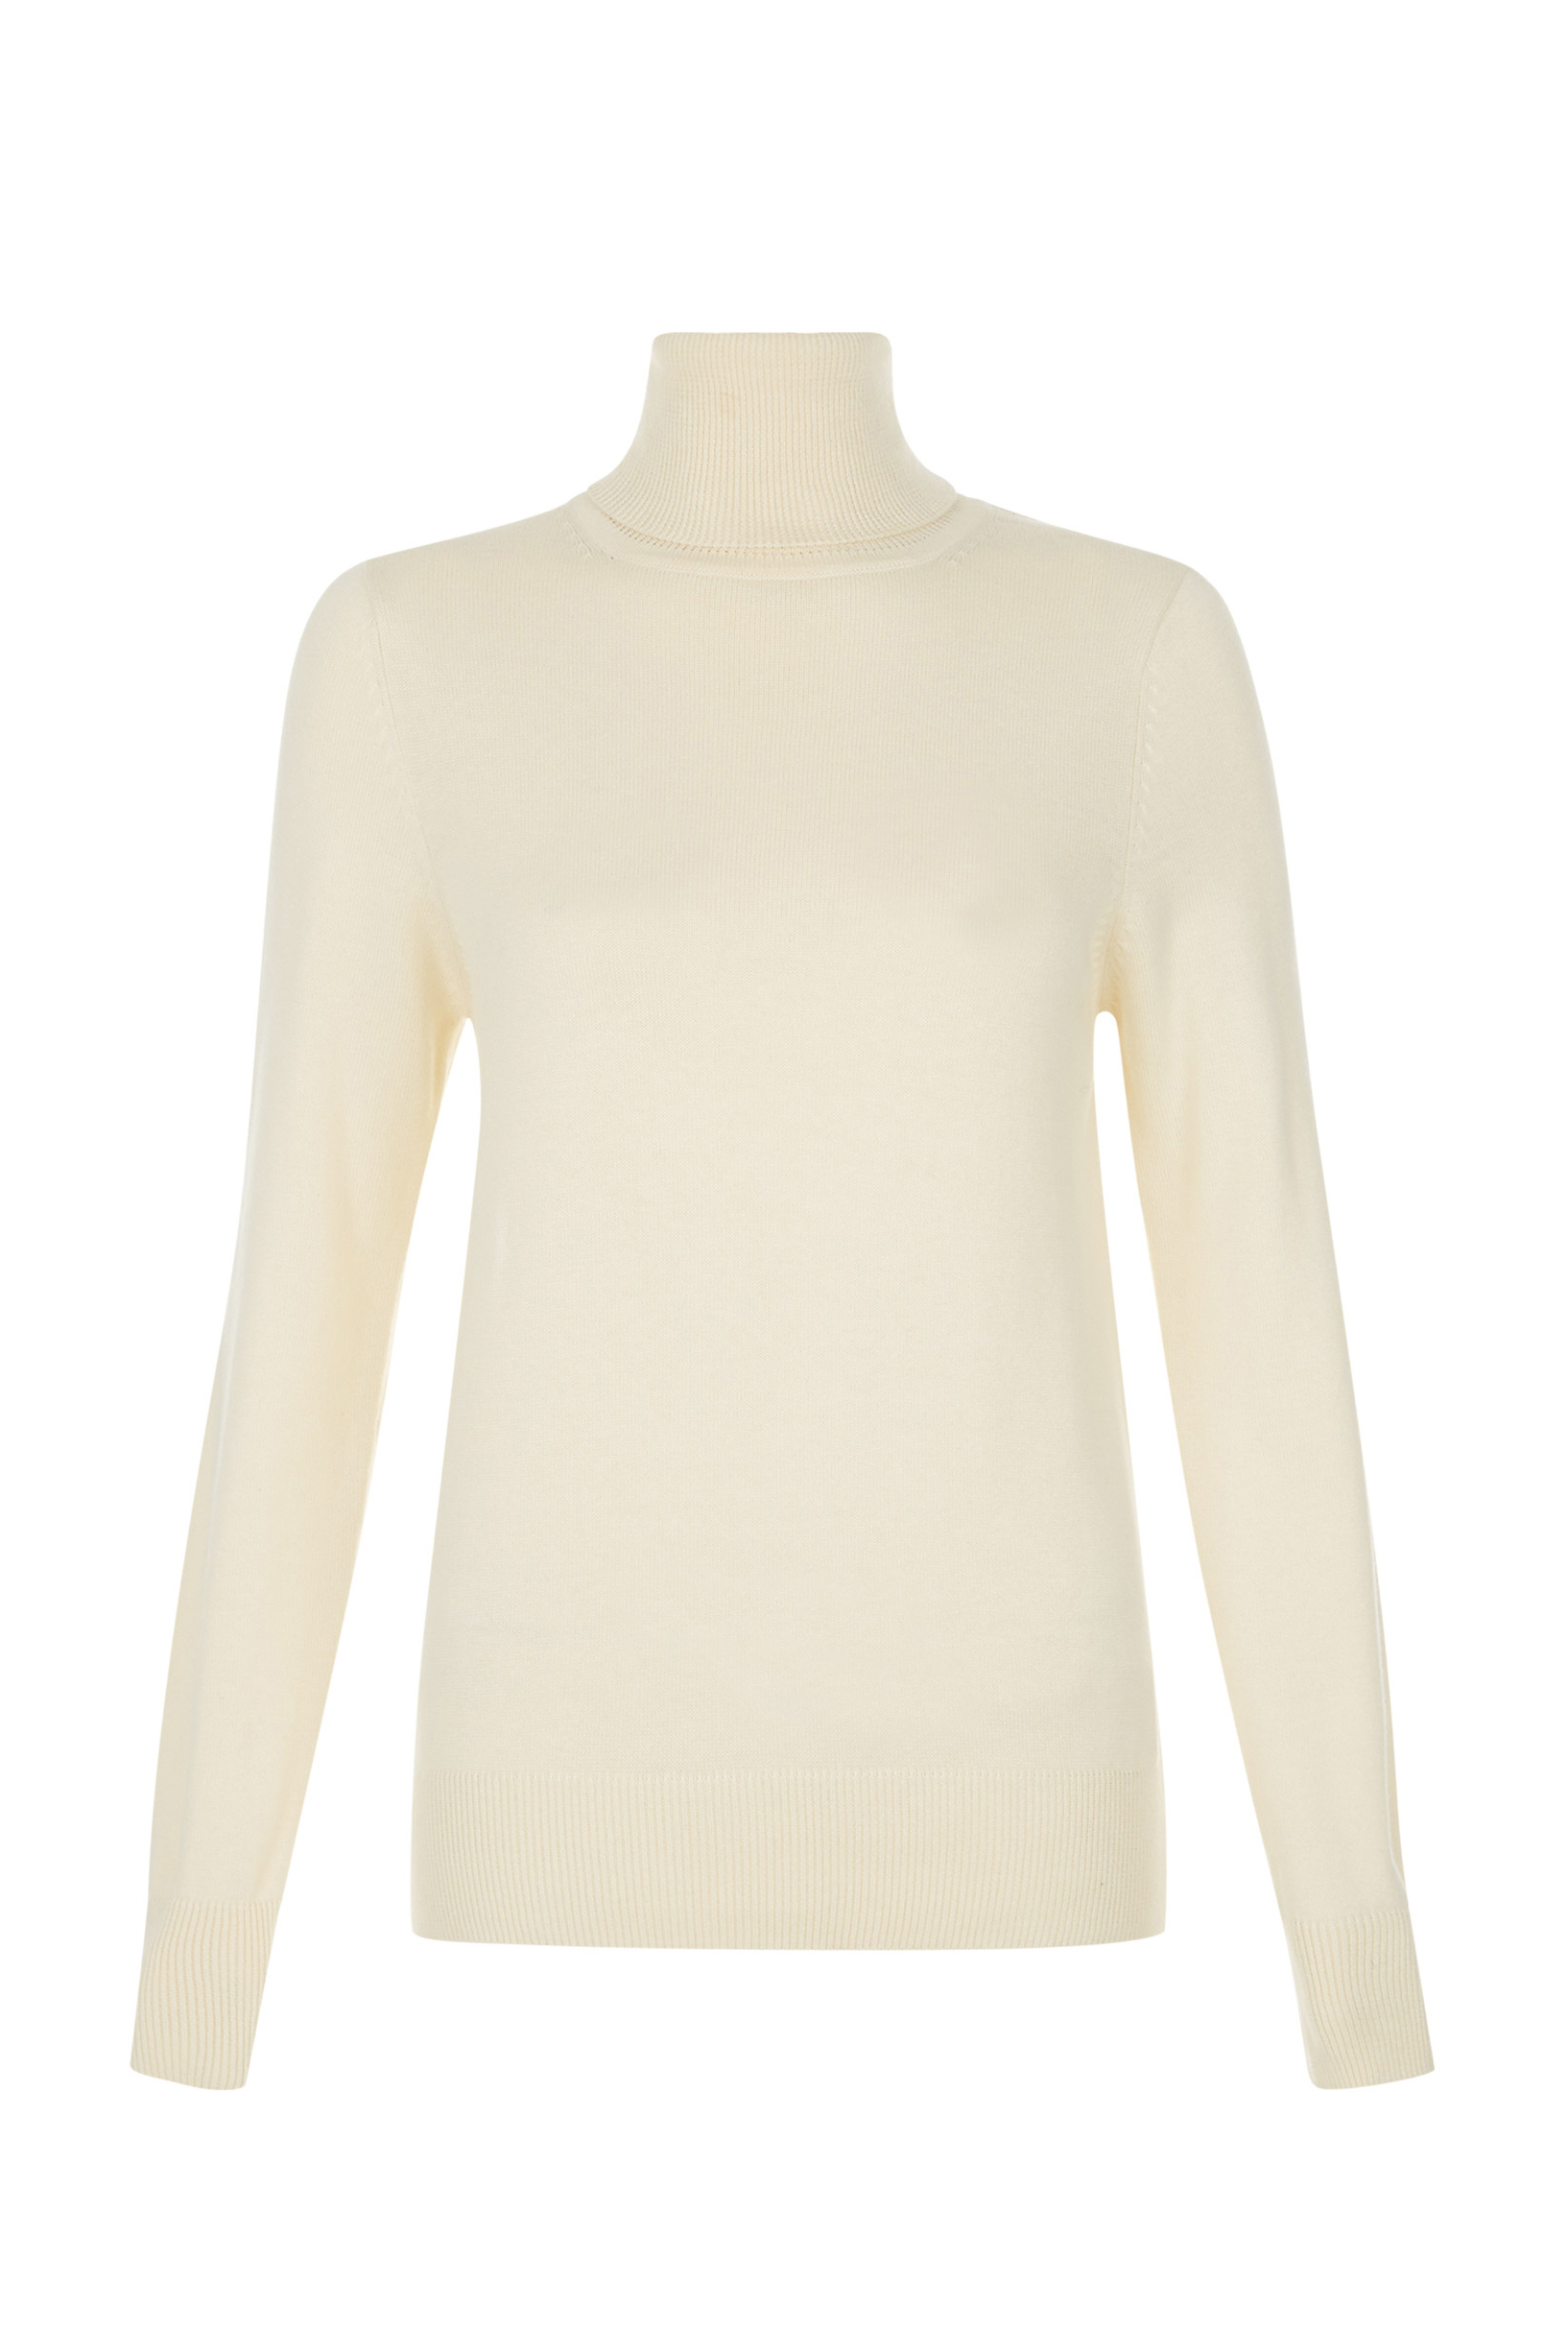 People Tree Rashida Roll Neck Jumper Organic Cotton